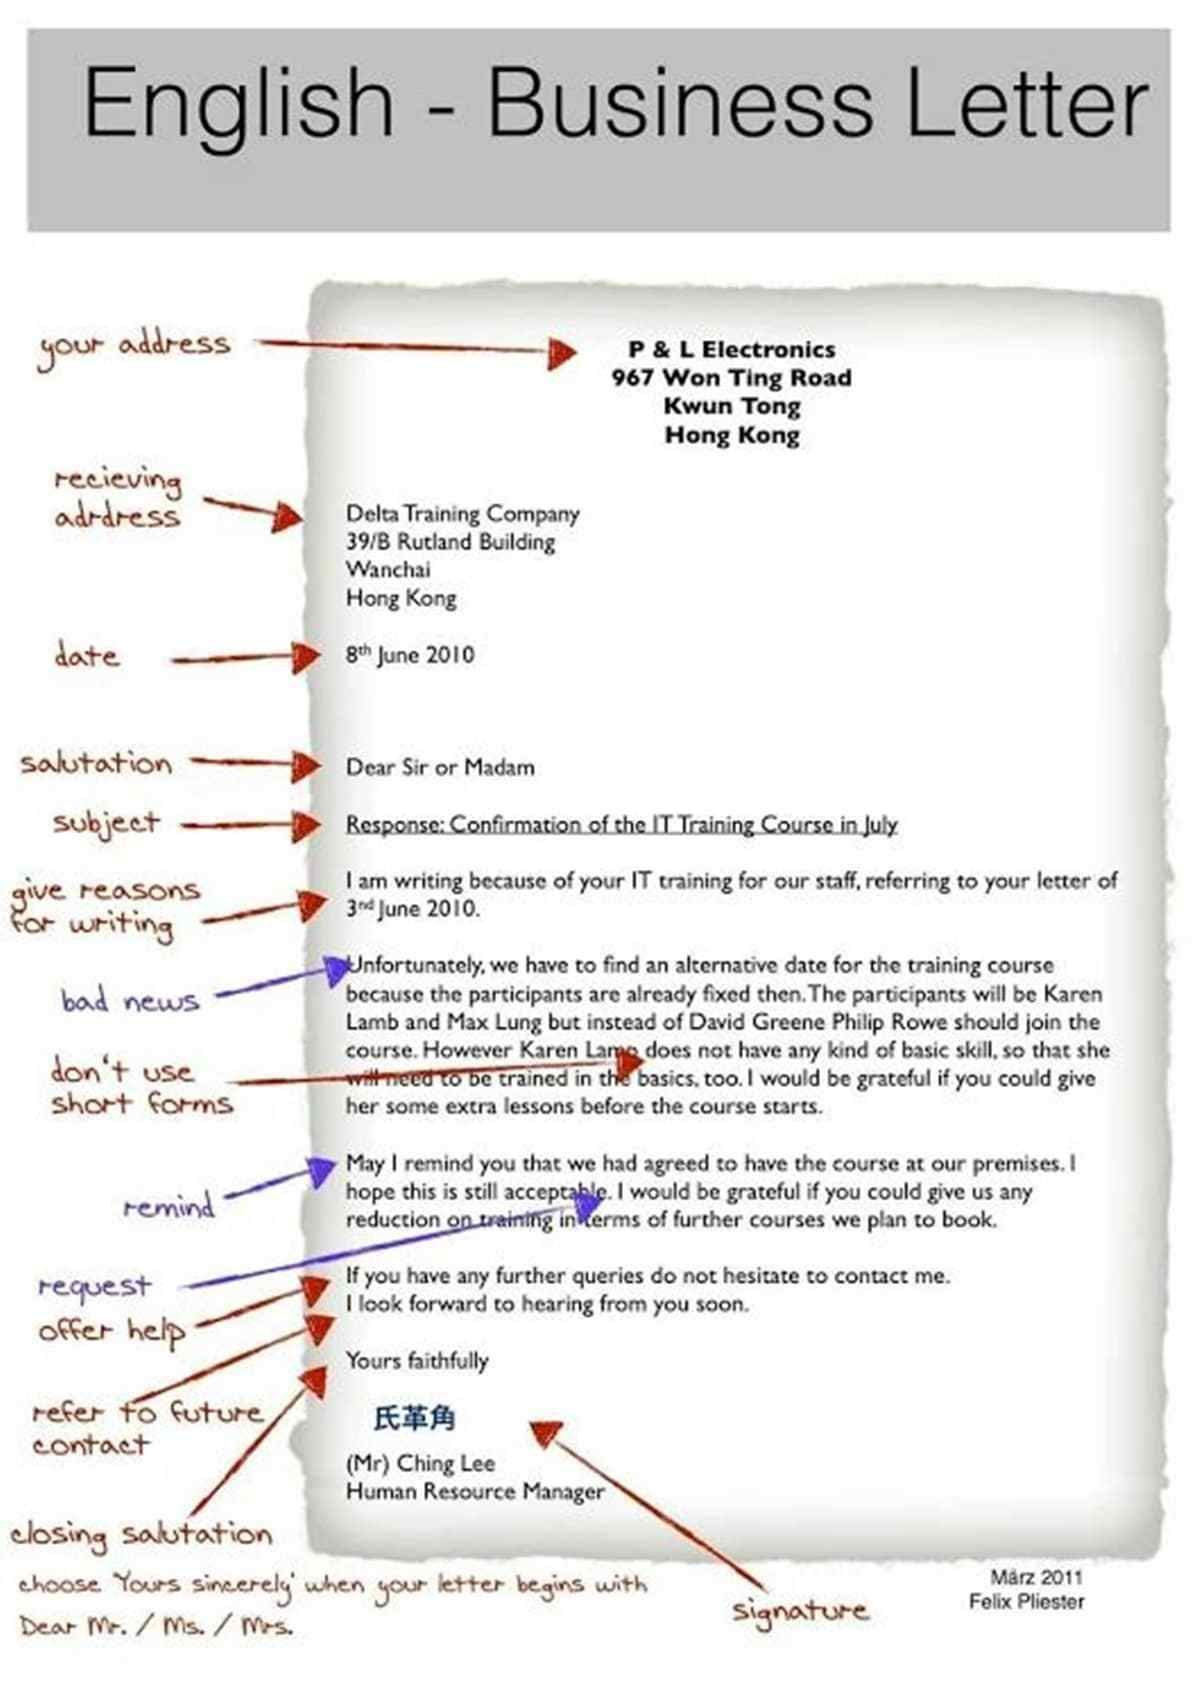 Useful Tips For Letter Writing Or To Be More Precise Phrases Which You May Need When Wr Business Letter Format English Business Letter English Letter Writing [ 1698 x 1200 Pixel ]